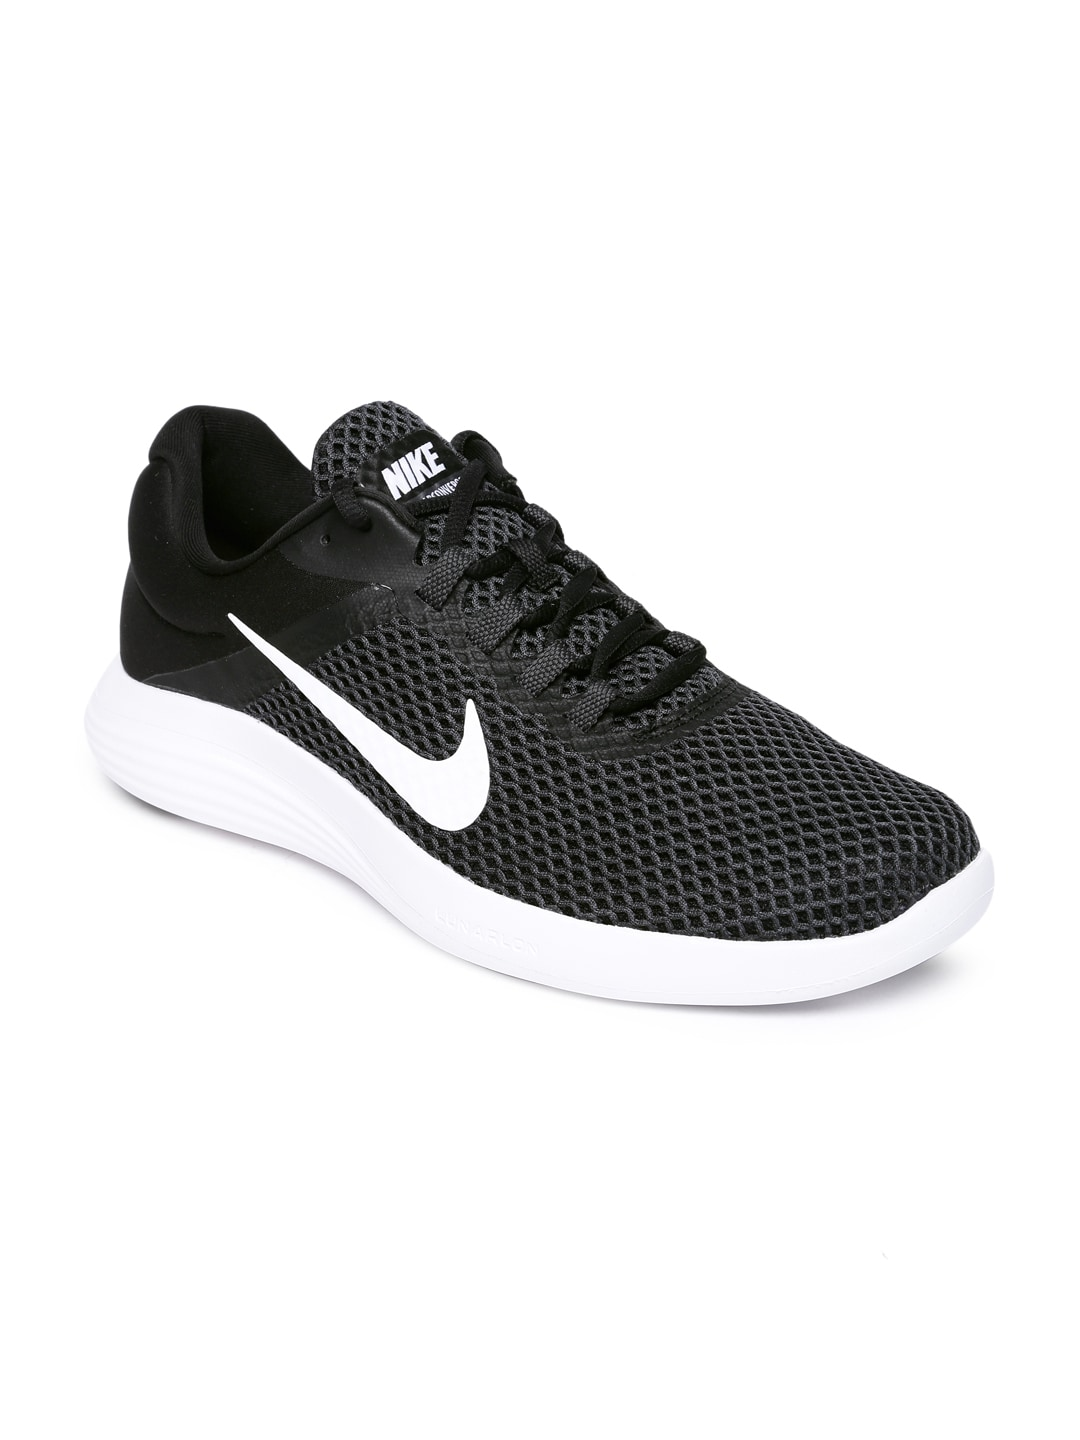 buy popular 8a498 308a3 Nike Running Shoes - Buy Nike Running Shoes Online   Myntra